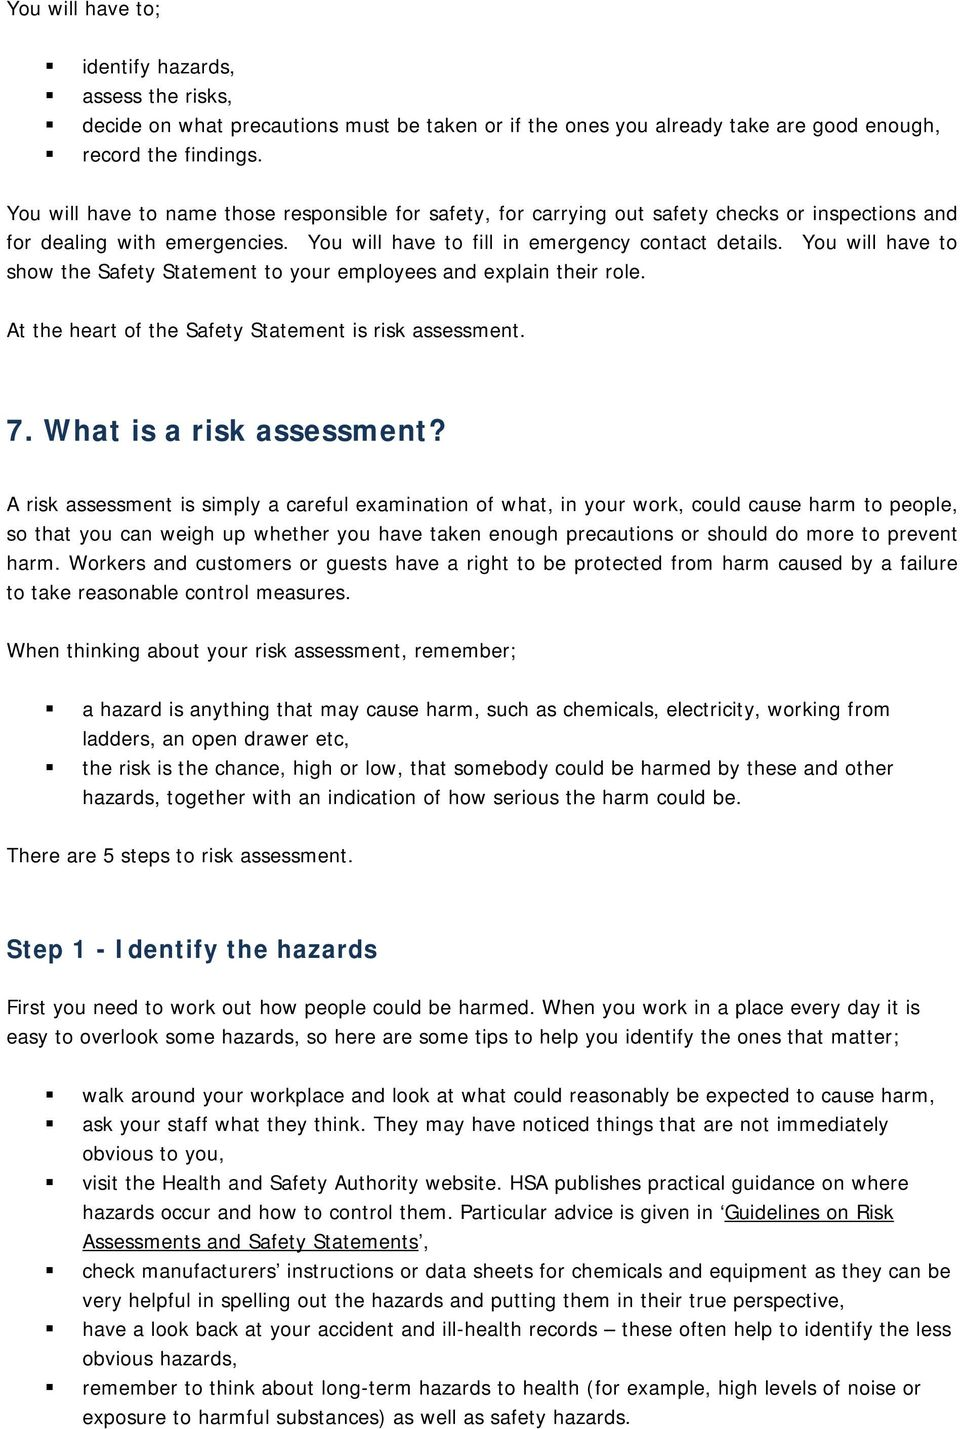 Safety Statement and Risk Assessment